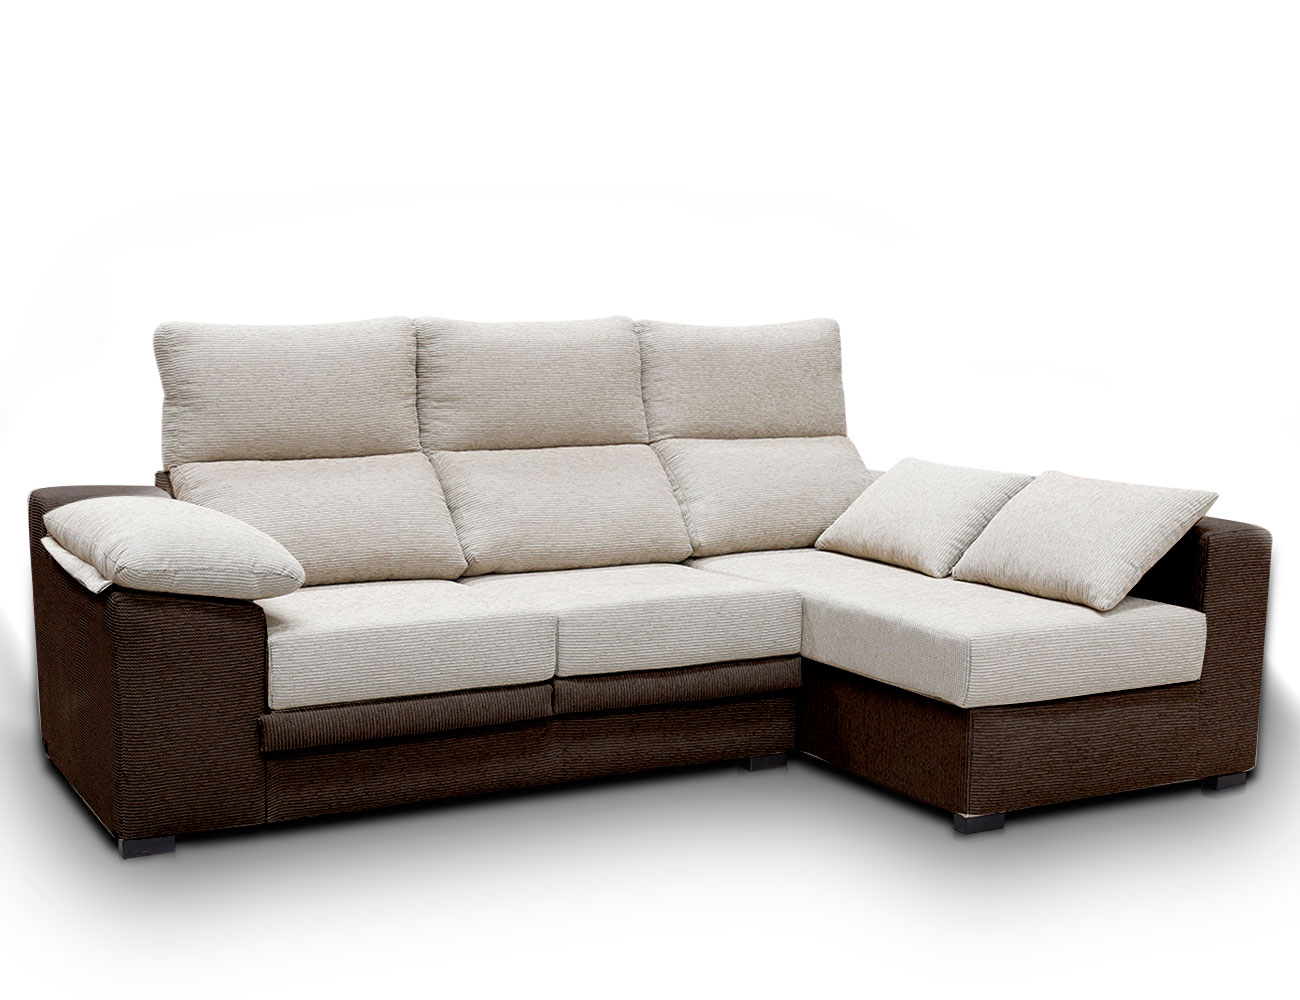 Sofa chaiselongue moderno cojines pardo cafe1